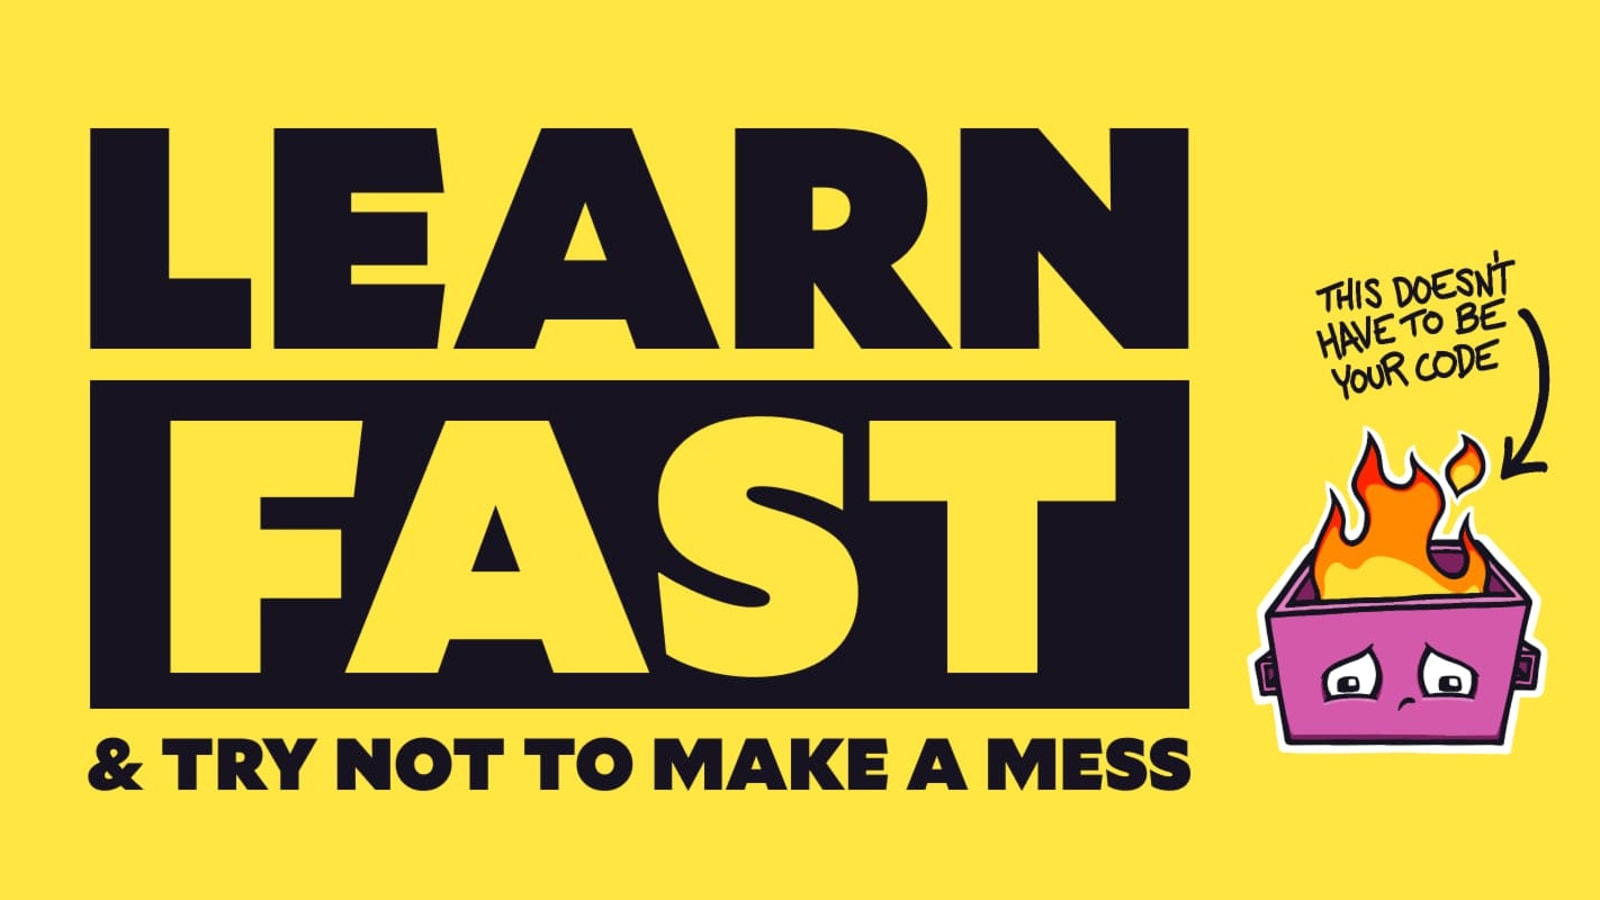 Convince your team to learn fast and try not to make a mess